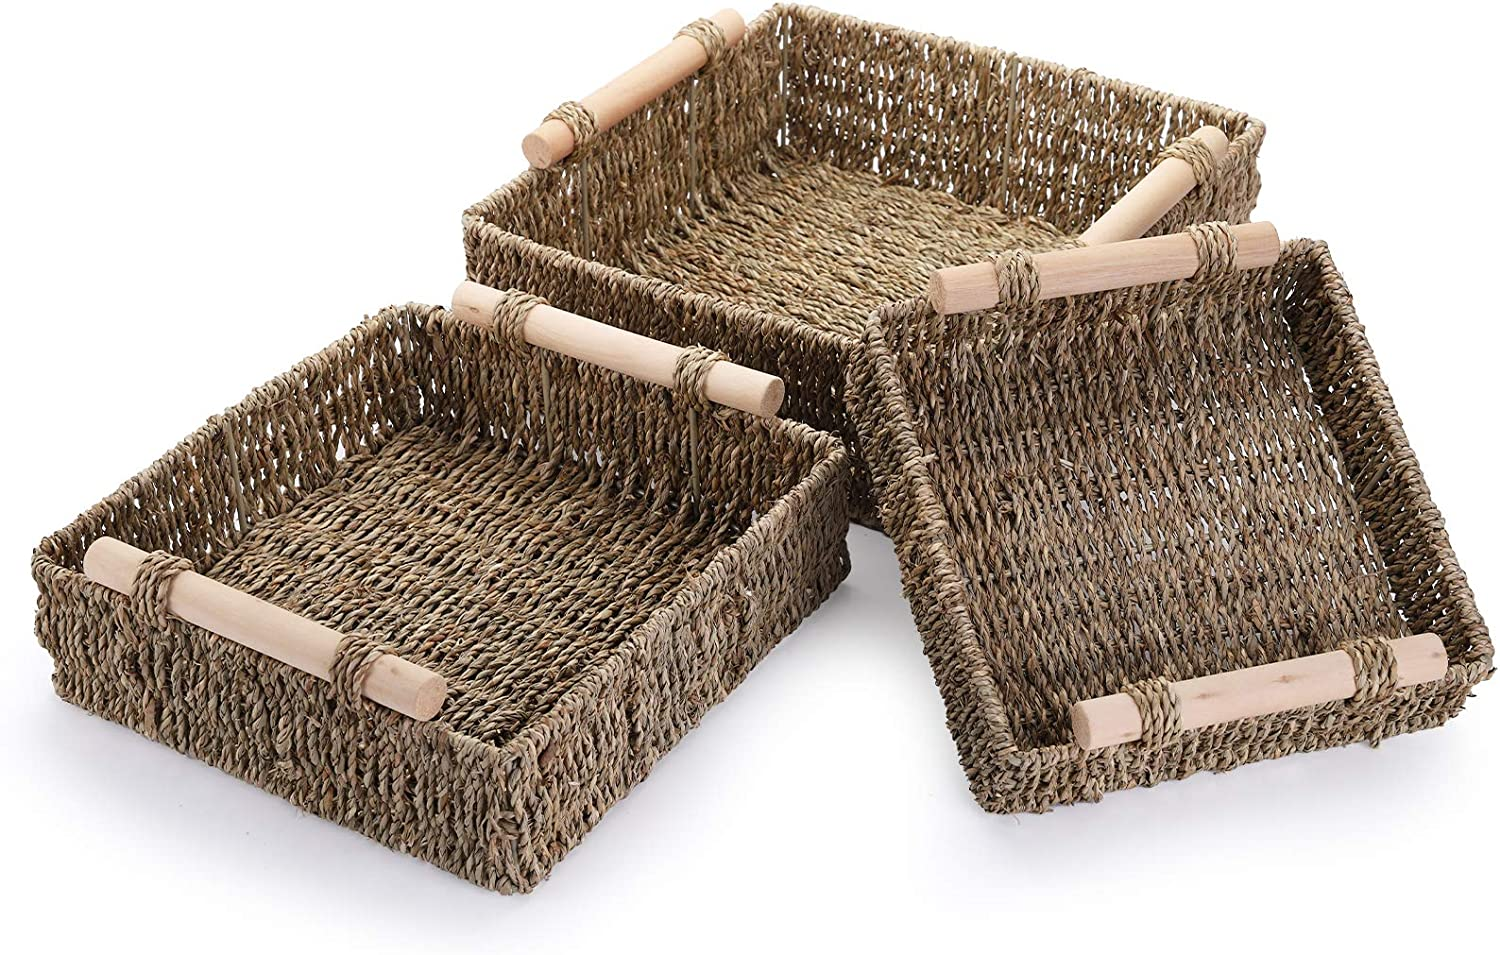 Yarlung 3 Pack Seagrass Baskets Wooden Nesting Han Ranking TOP13 Award Handles with